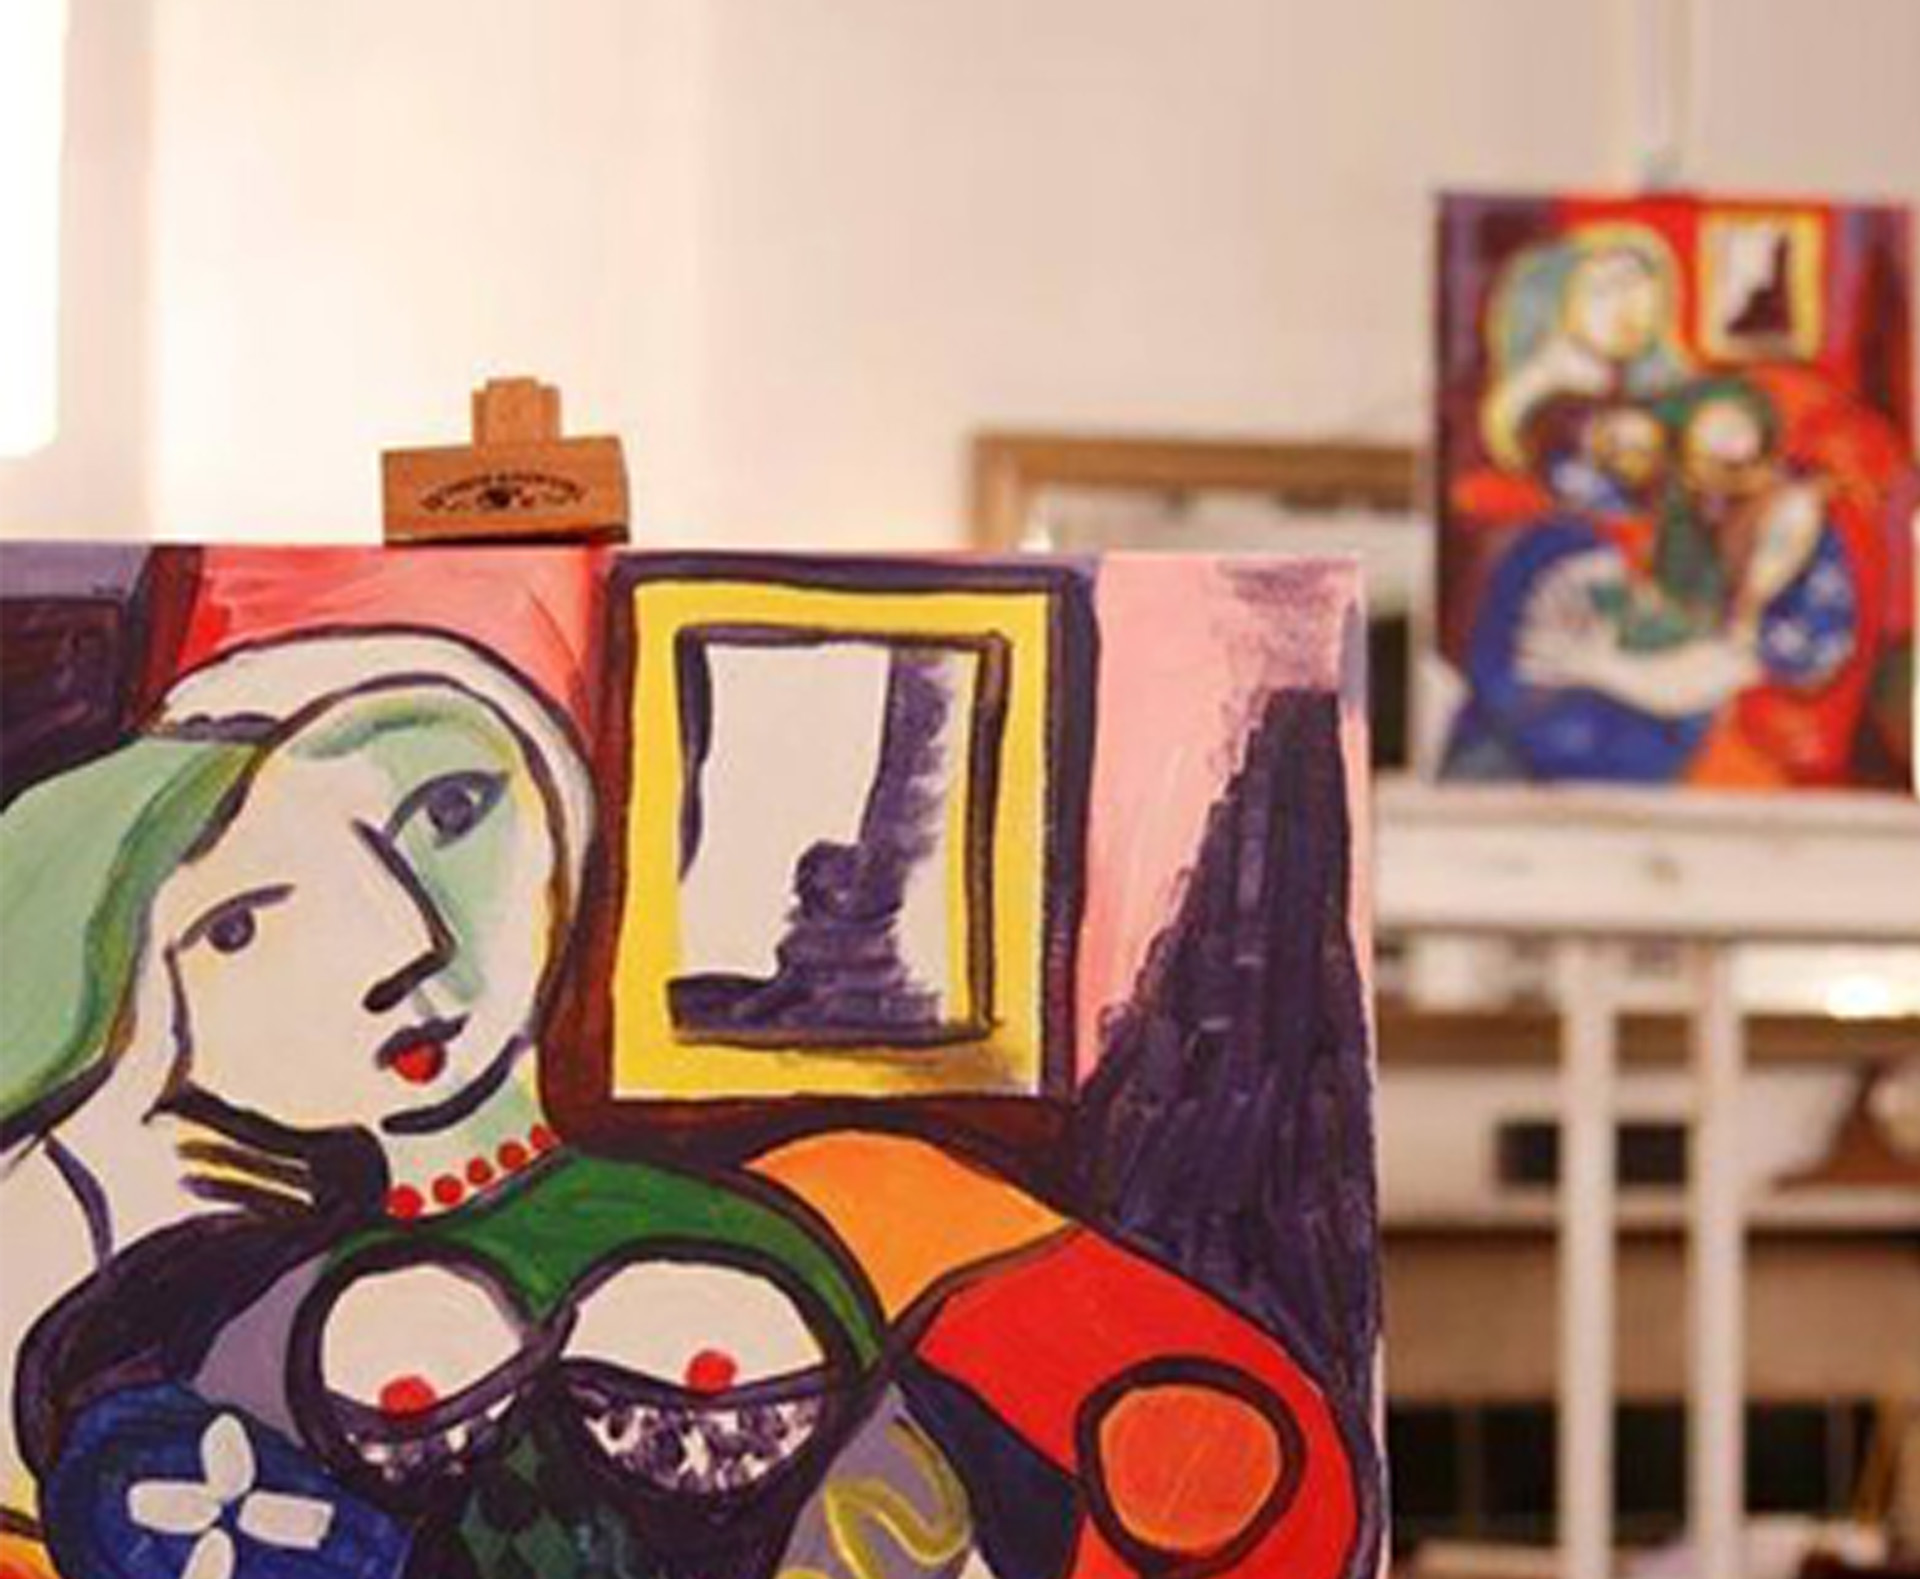 picasso home page image